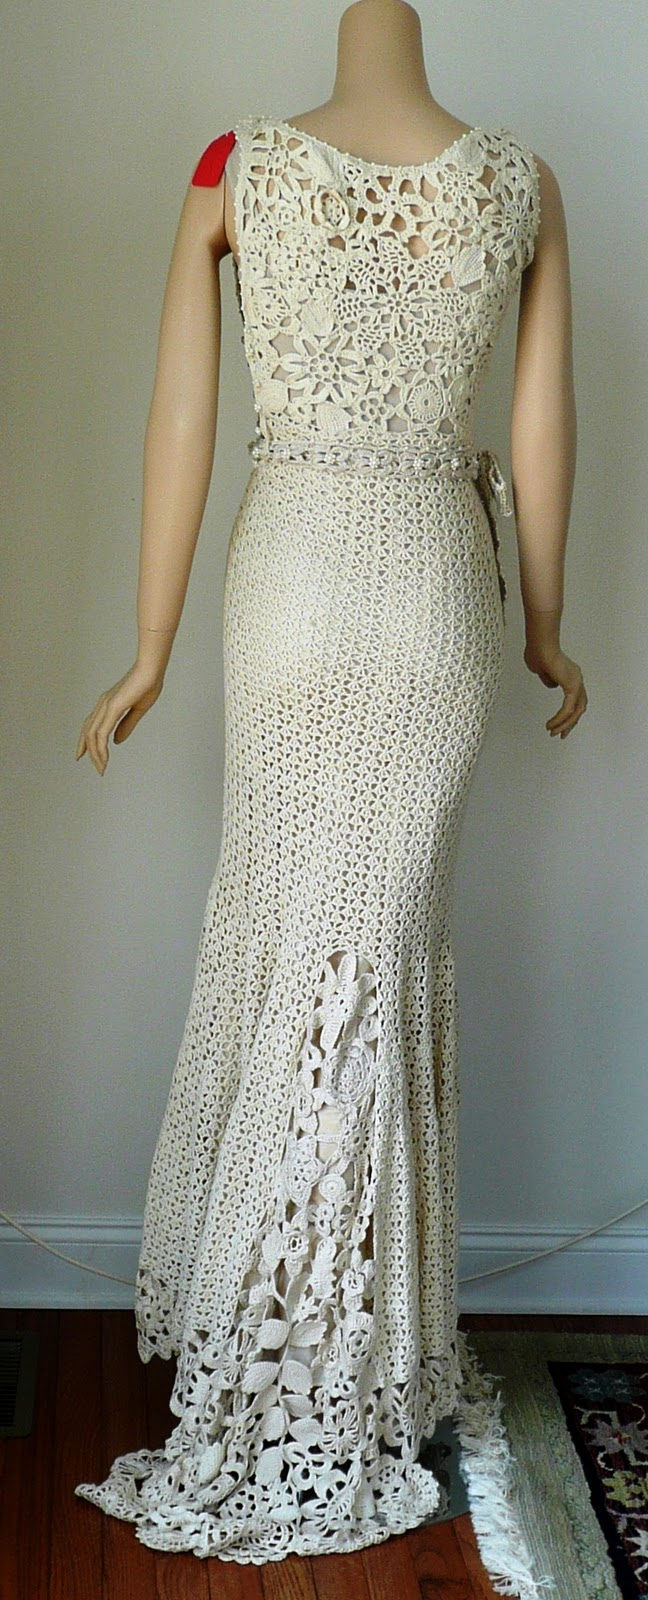 Crochet dress pattern wedding crochet patterns for Crochet wedding dress pattern